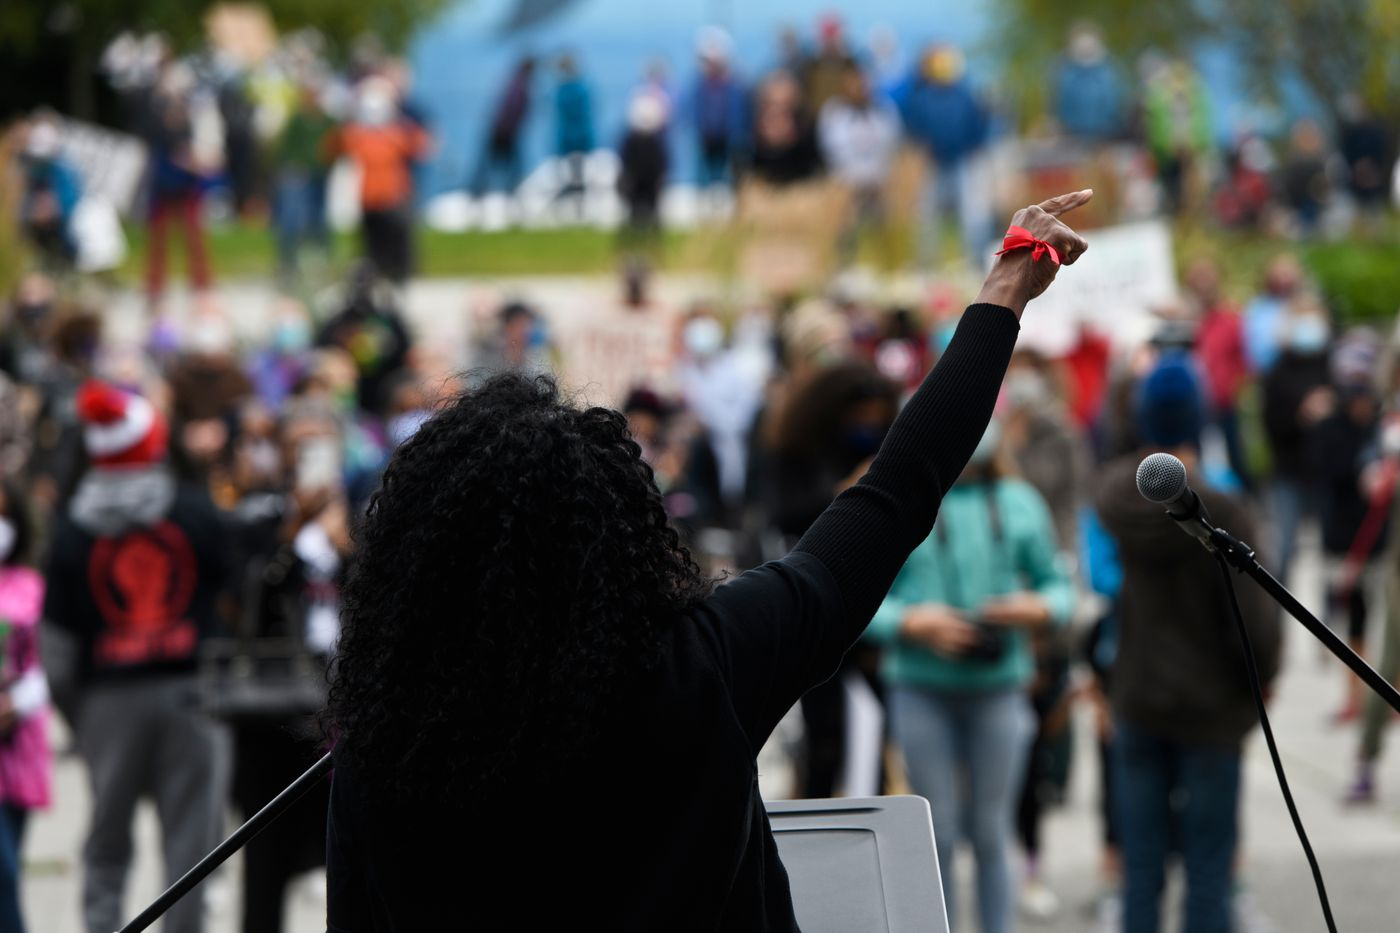 Celeste Hodge Growden, president of Alaska Black Caucus, speaks at the audience at Town Square at the start of the March on Alaska event. (Marc Lester / ADN)